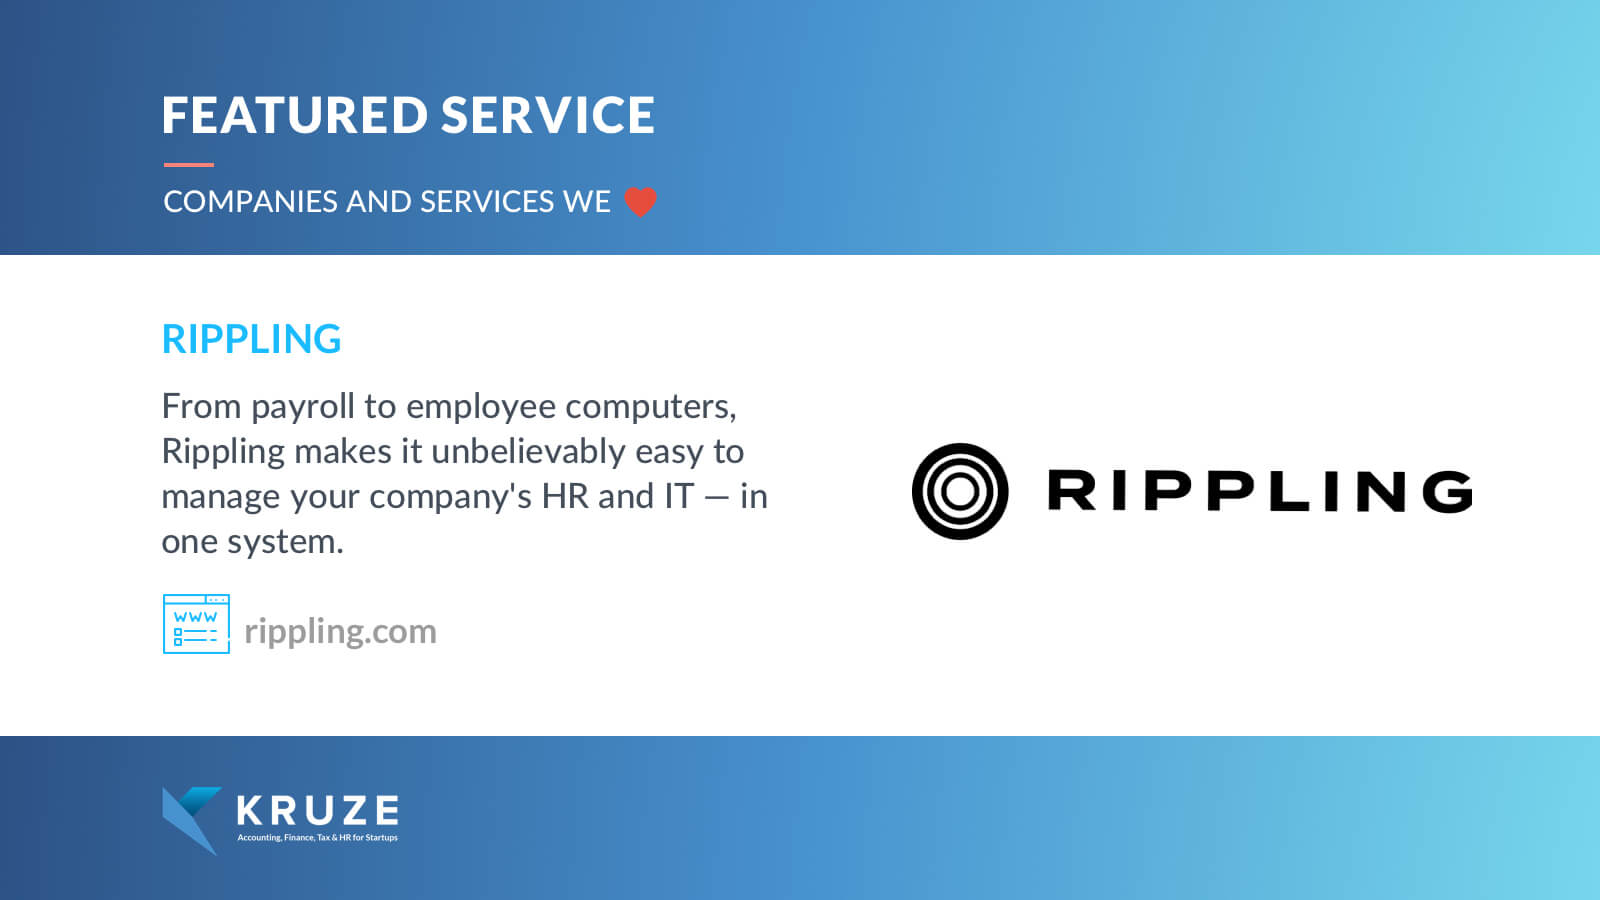 Featured Service - Rippling